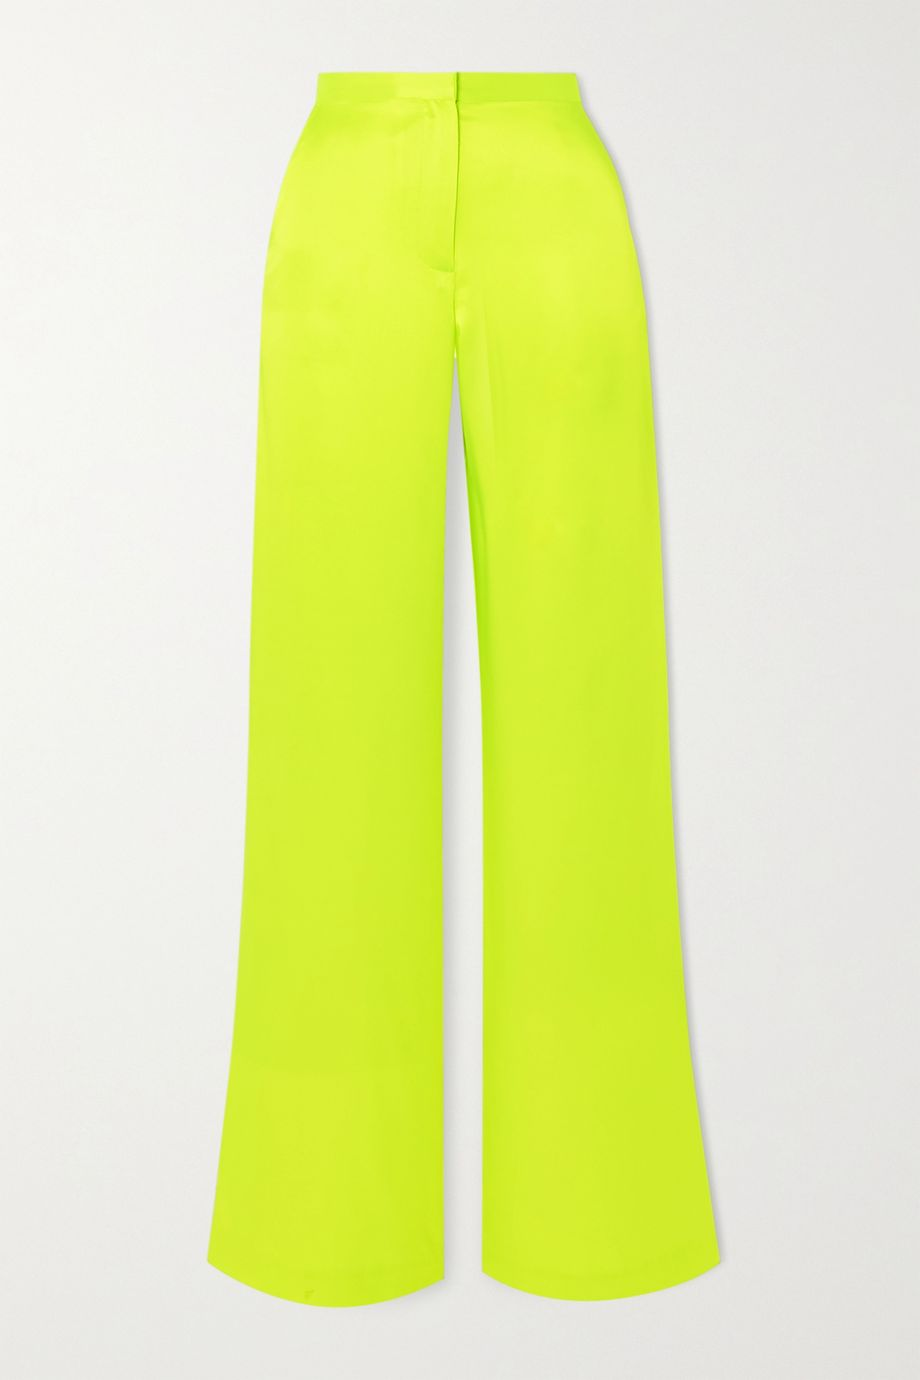 Christopher John Rogers Neon silk-charmeuse wide-leg pants